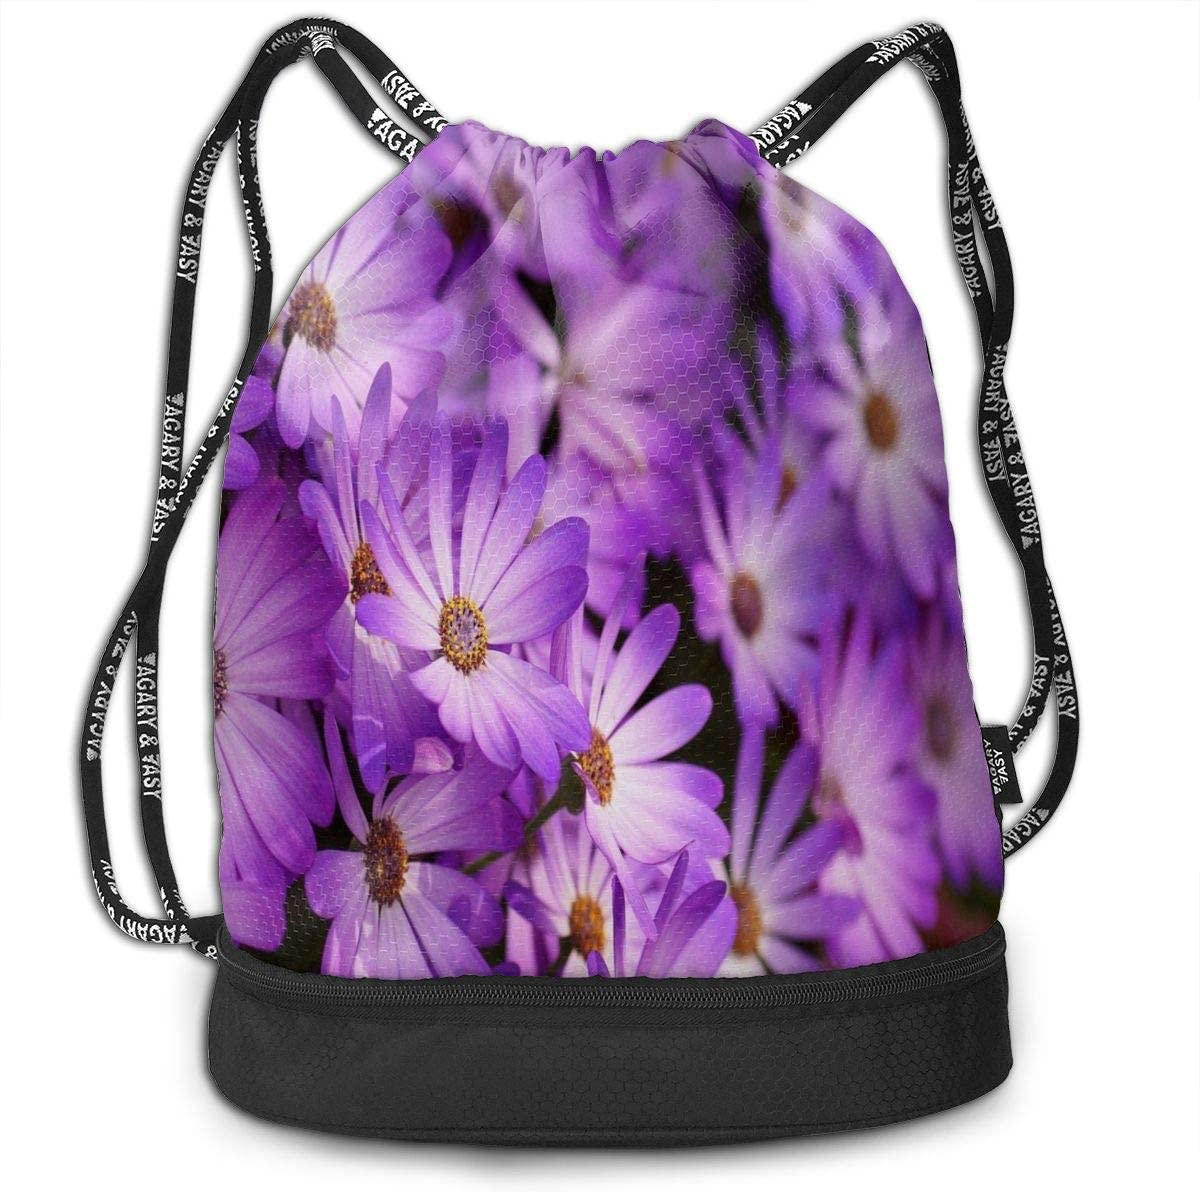 Unisex Bundle Backpack Purple Flowers Lotus Travel Durable Large Space Trendy Waterproof Drawstring Bag